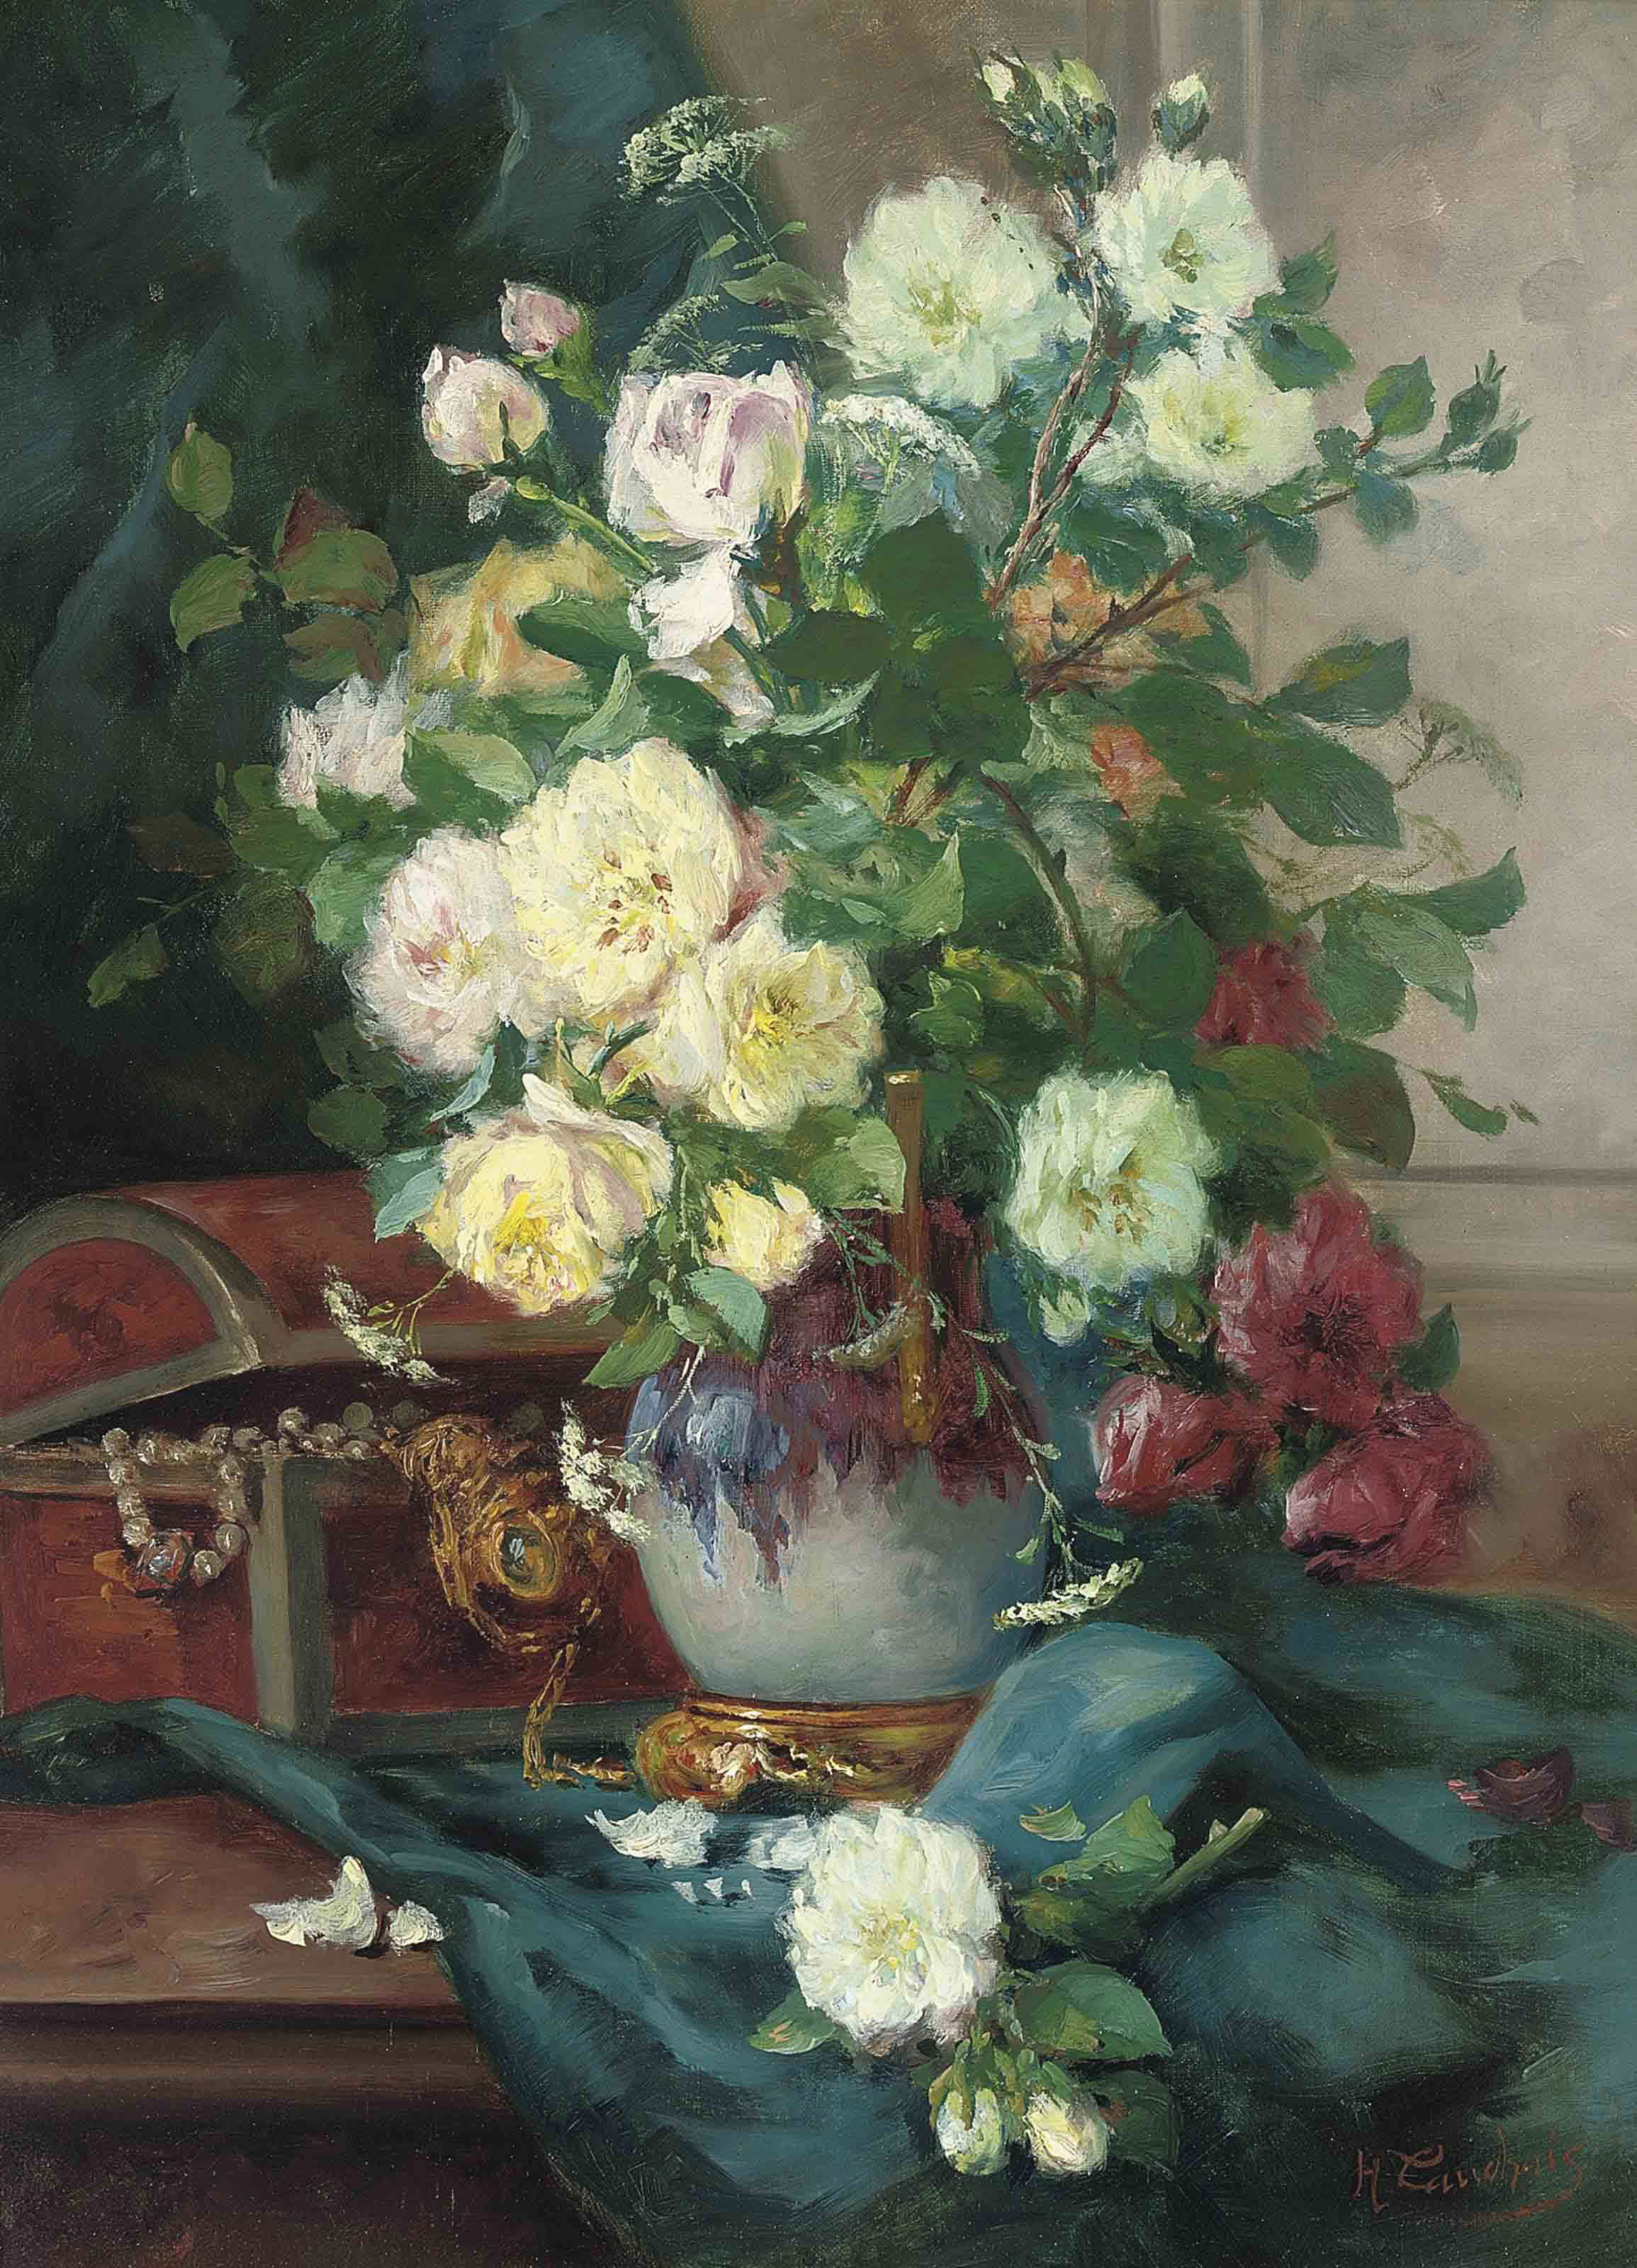 Red roses, white roses and horse parsley in an ornamental vase by a chest of jewels on a draped ledge